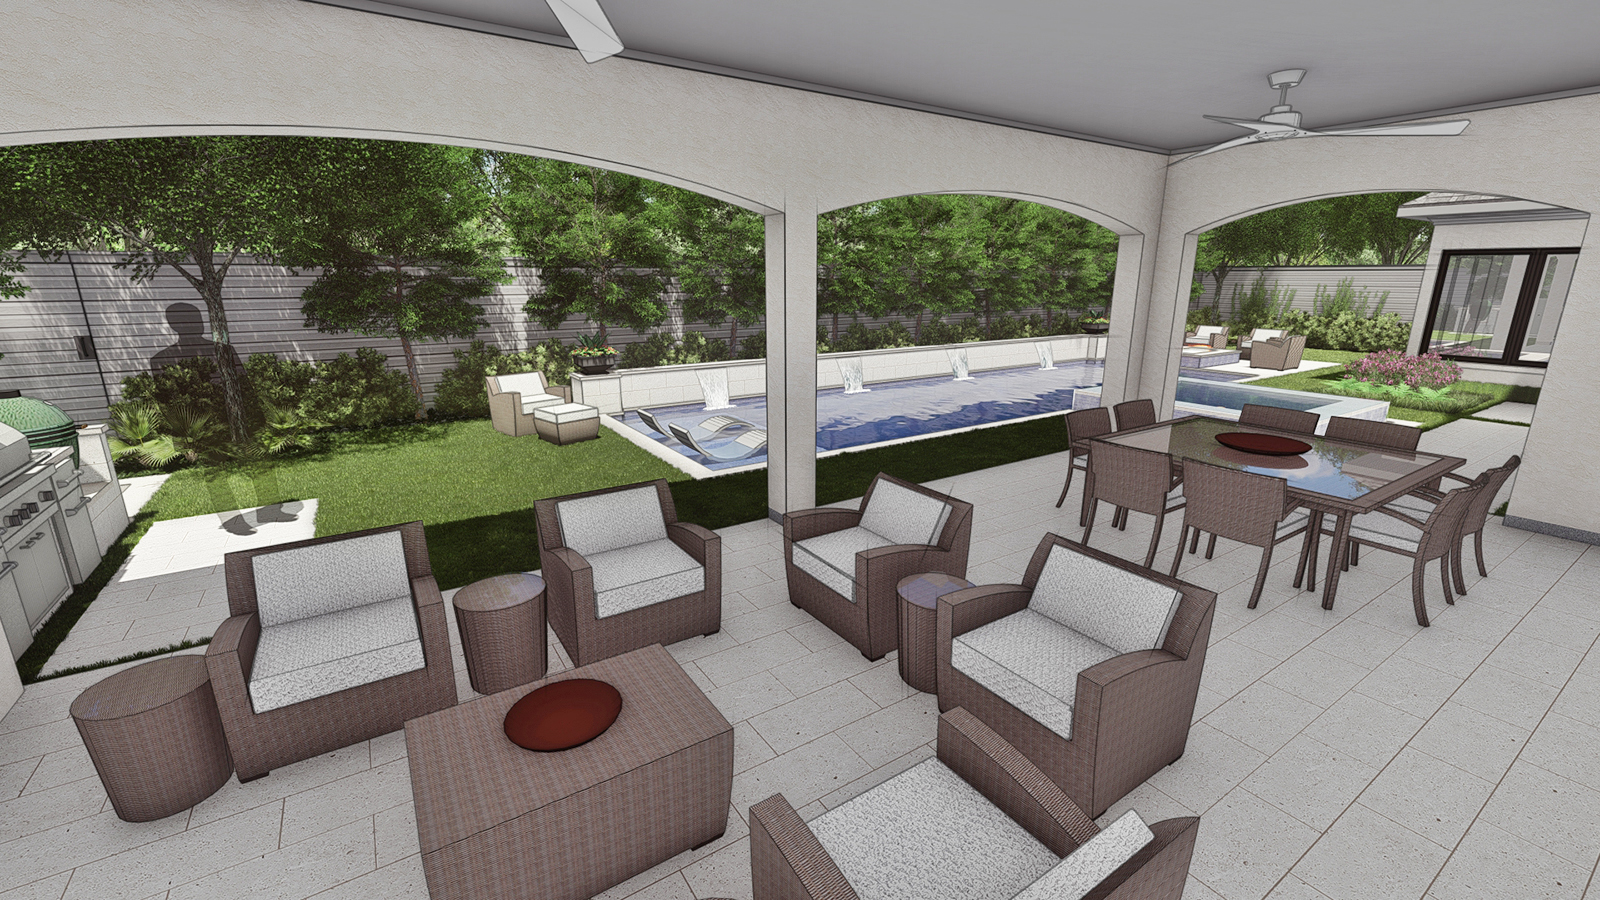 VIEW OF COVERED PORCH TOWARD POOL